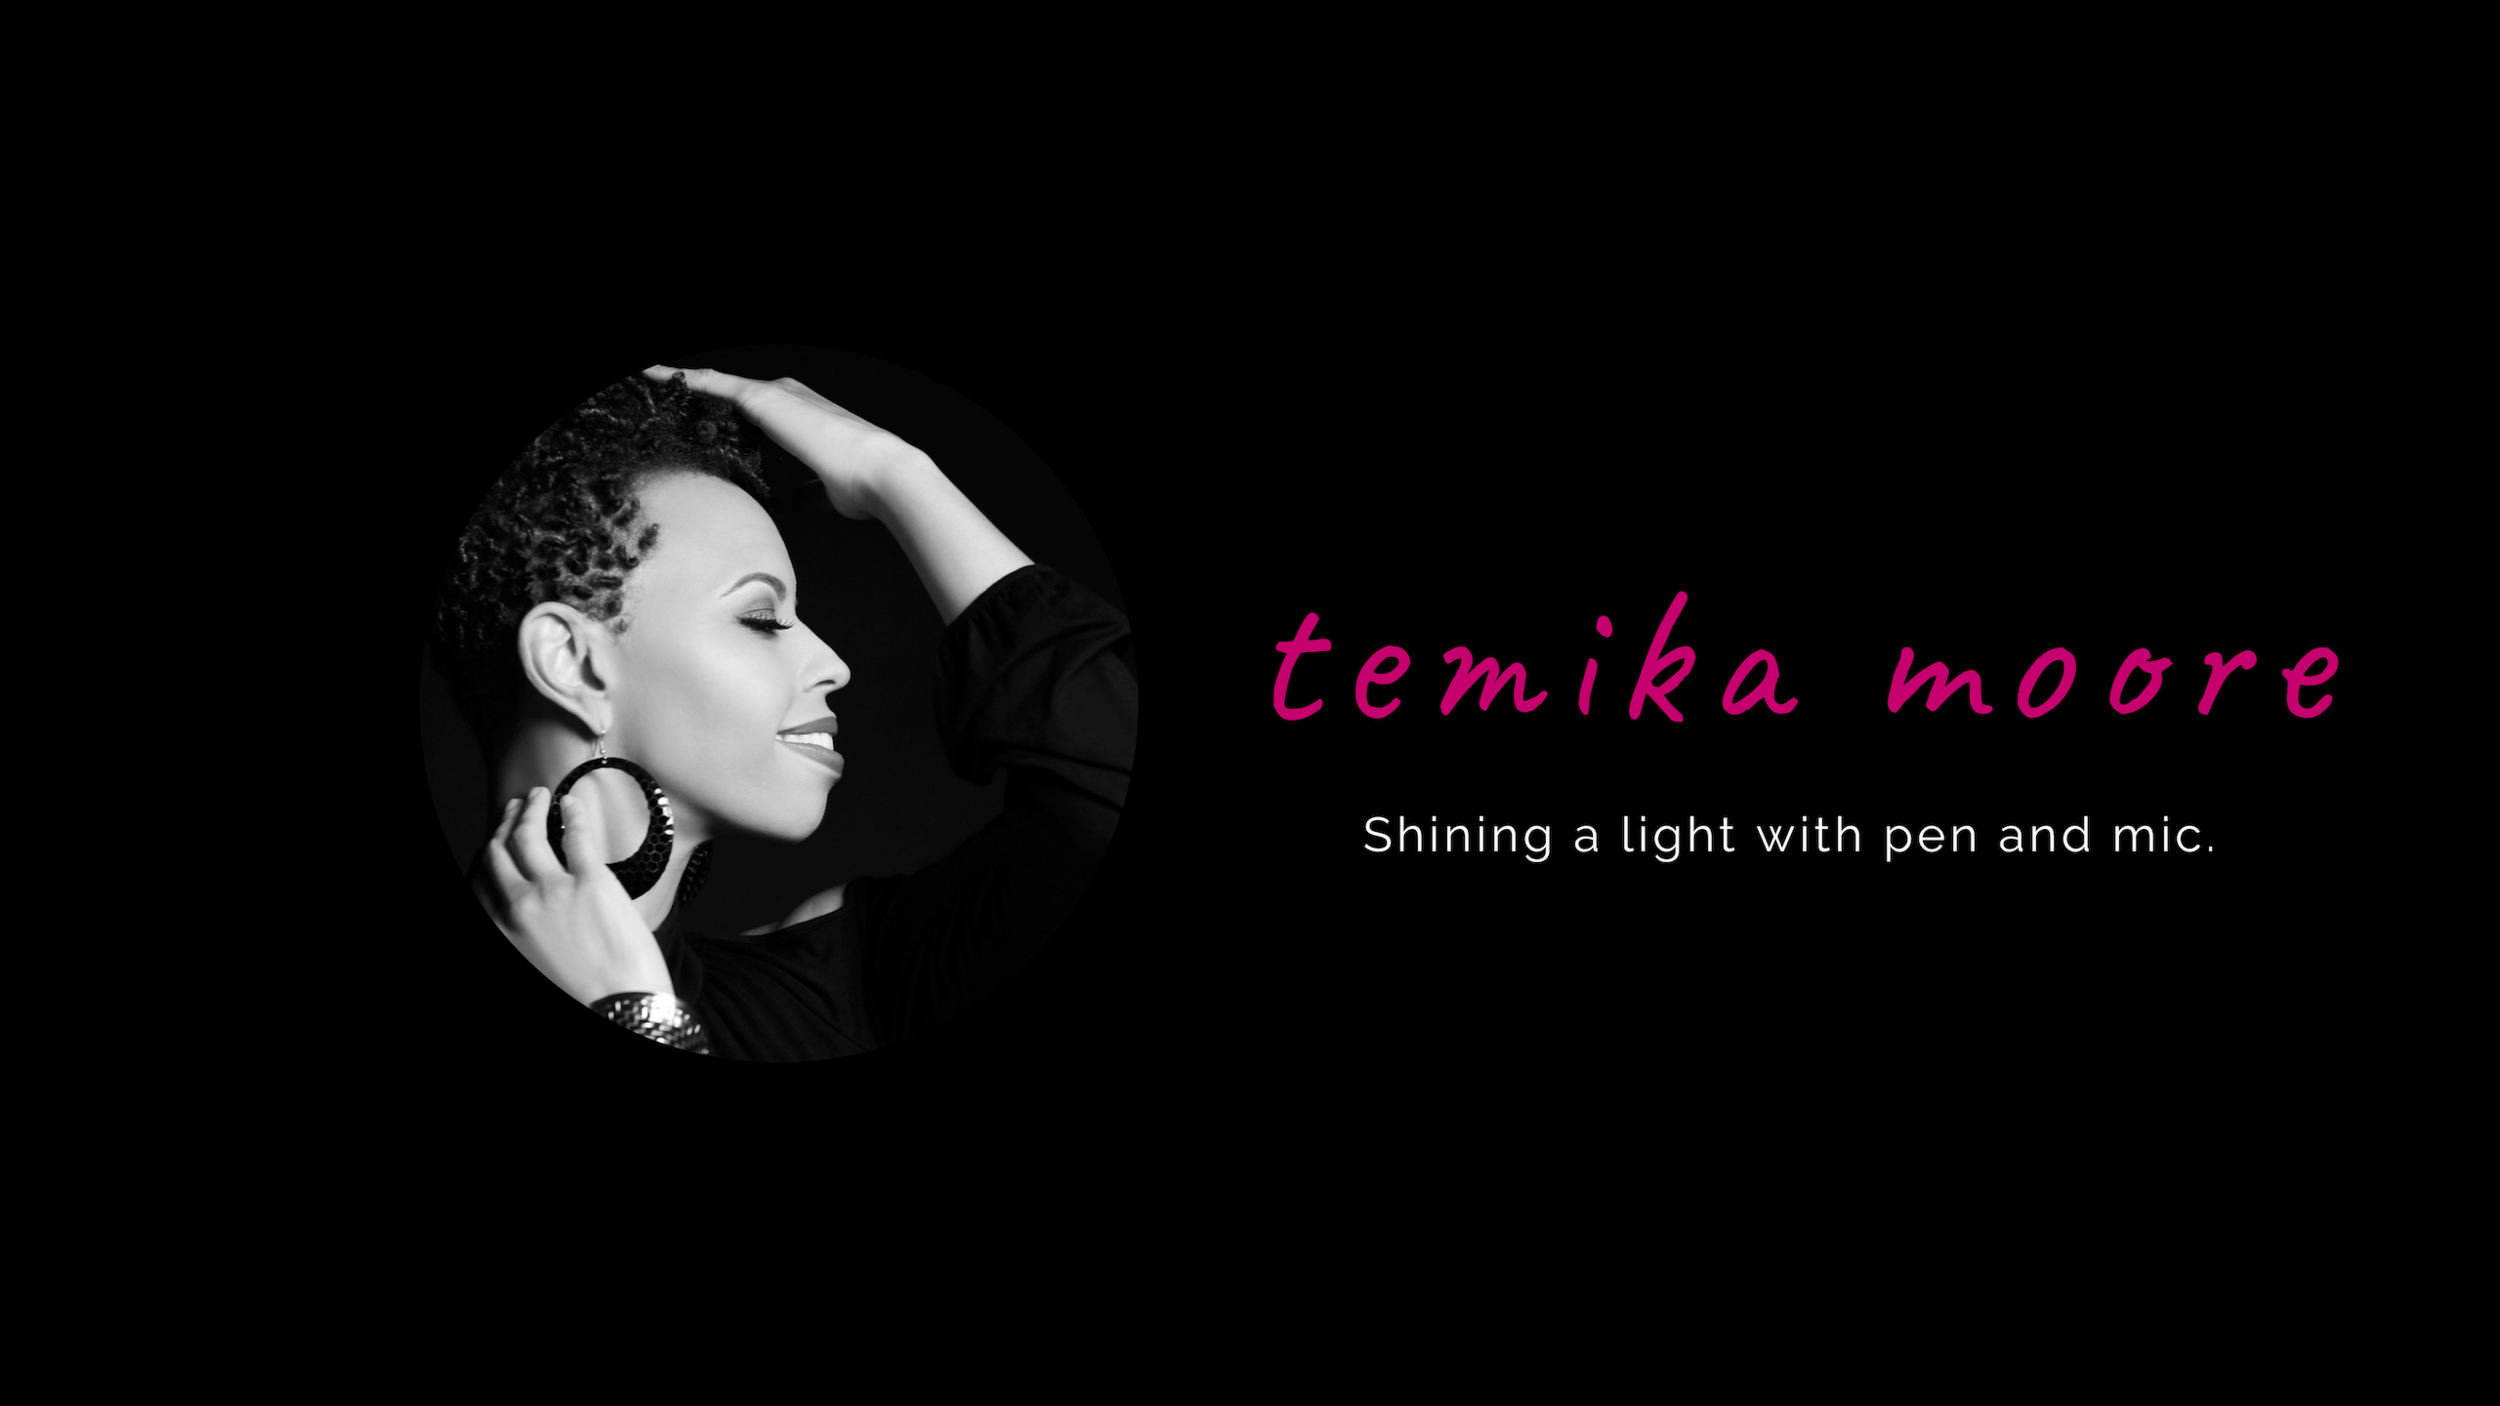 temika-moore-shining-a-light-with-pen-and-mic.png